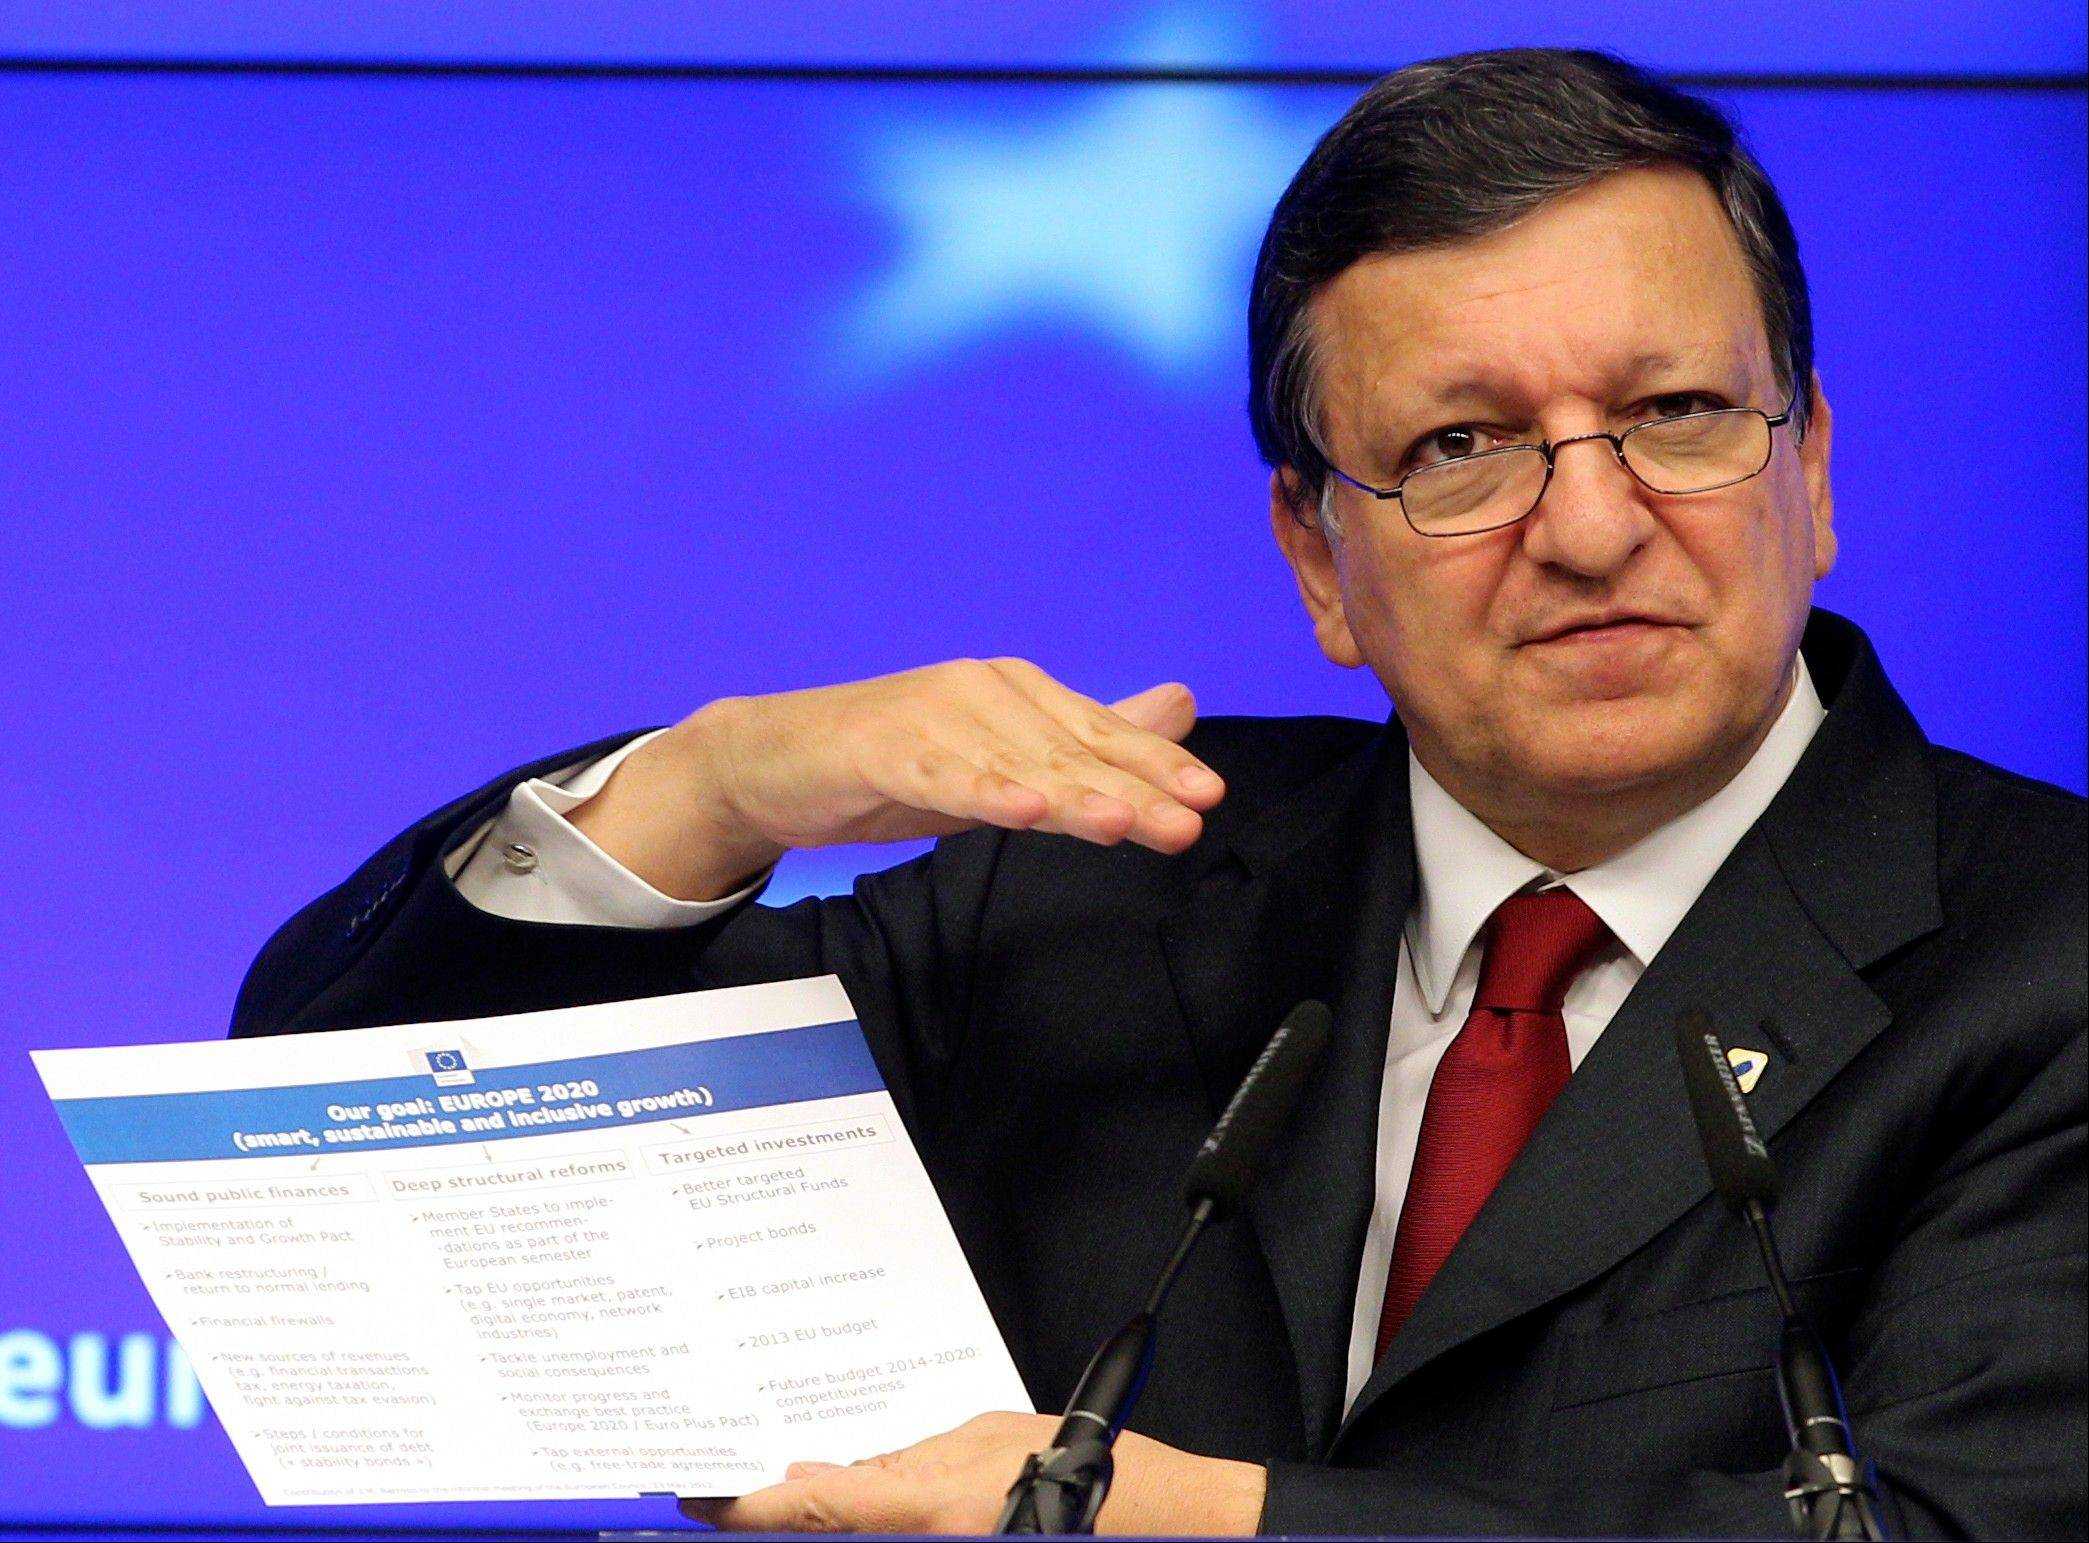 European Commission President Jose Manuel Barroso addresses the media at the end of an EU summit, at the European Council building in Brussels. The leaders